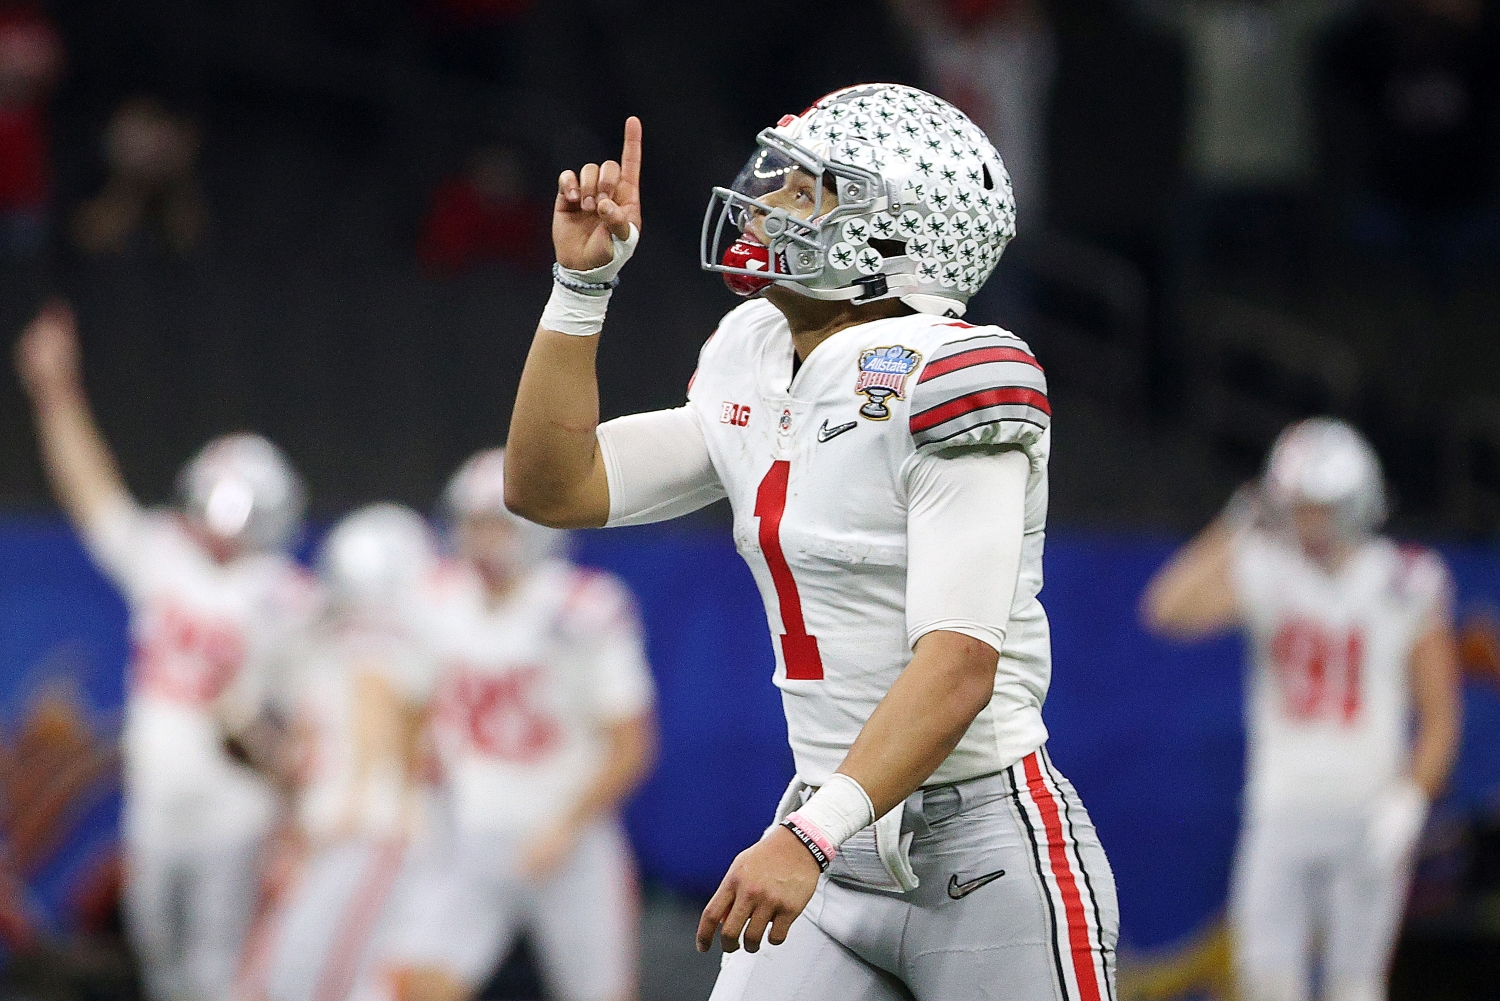 Ohio State quarterback Justin Fields reacts after throwing a touchdown pass during the 2021 College Football Playoff semifinal on New Year's Day.